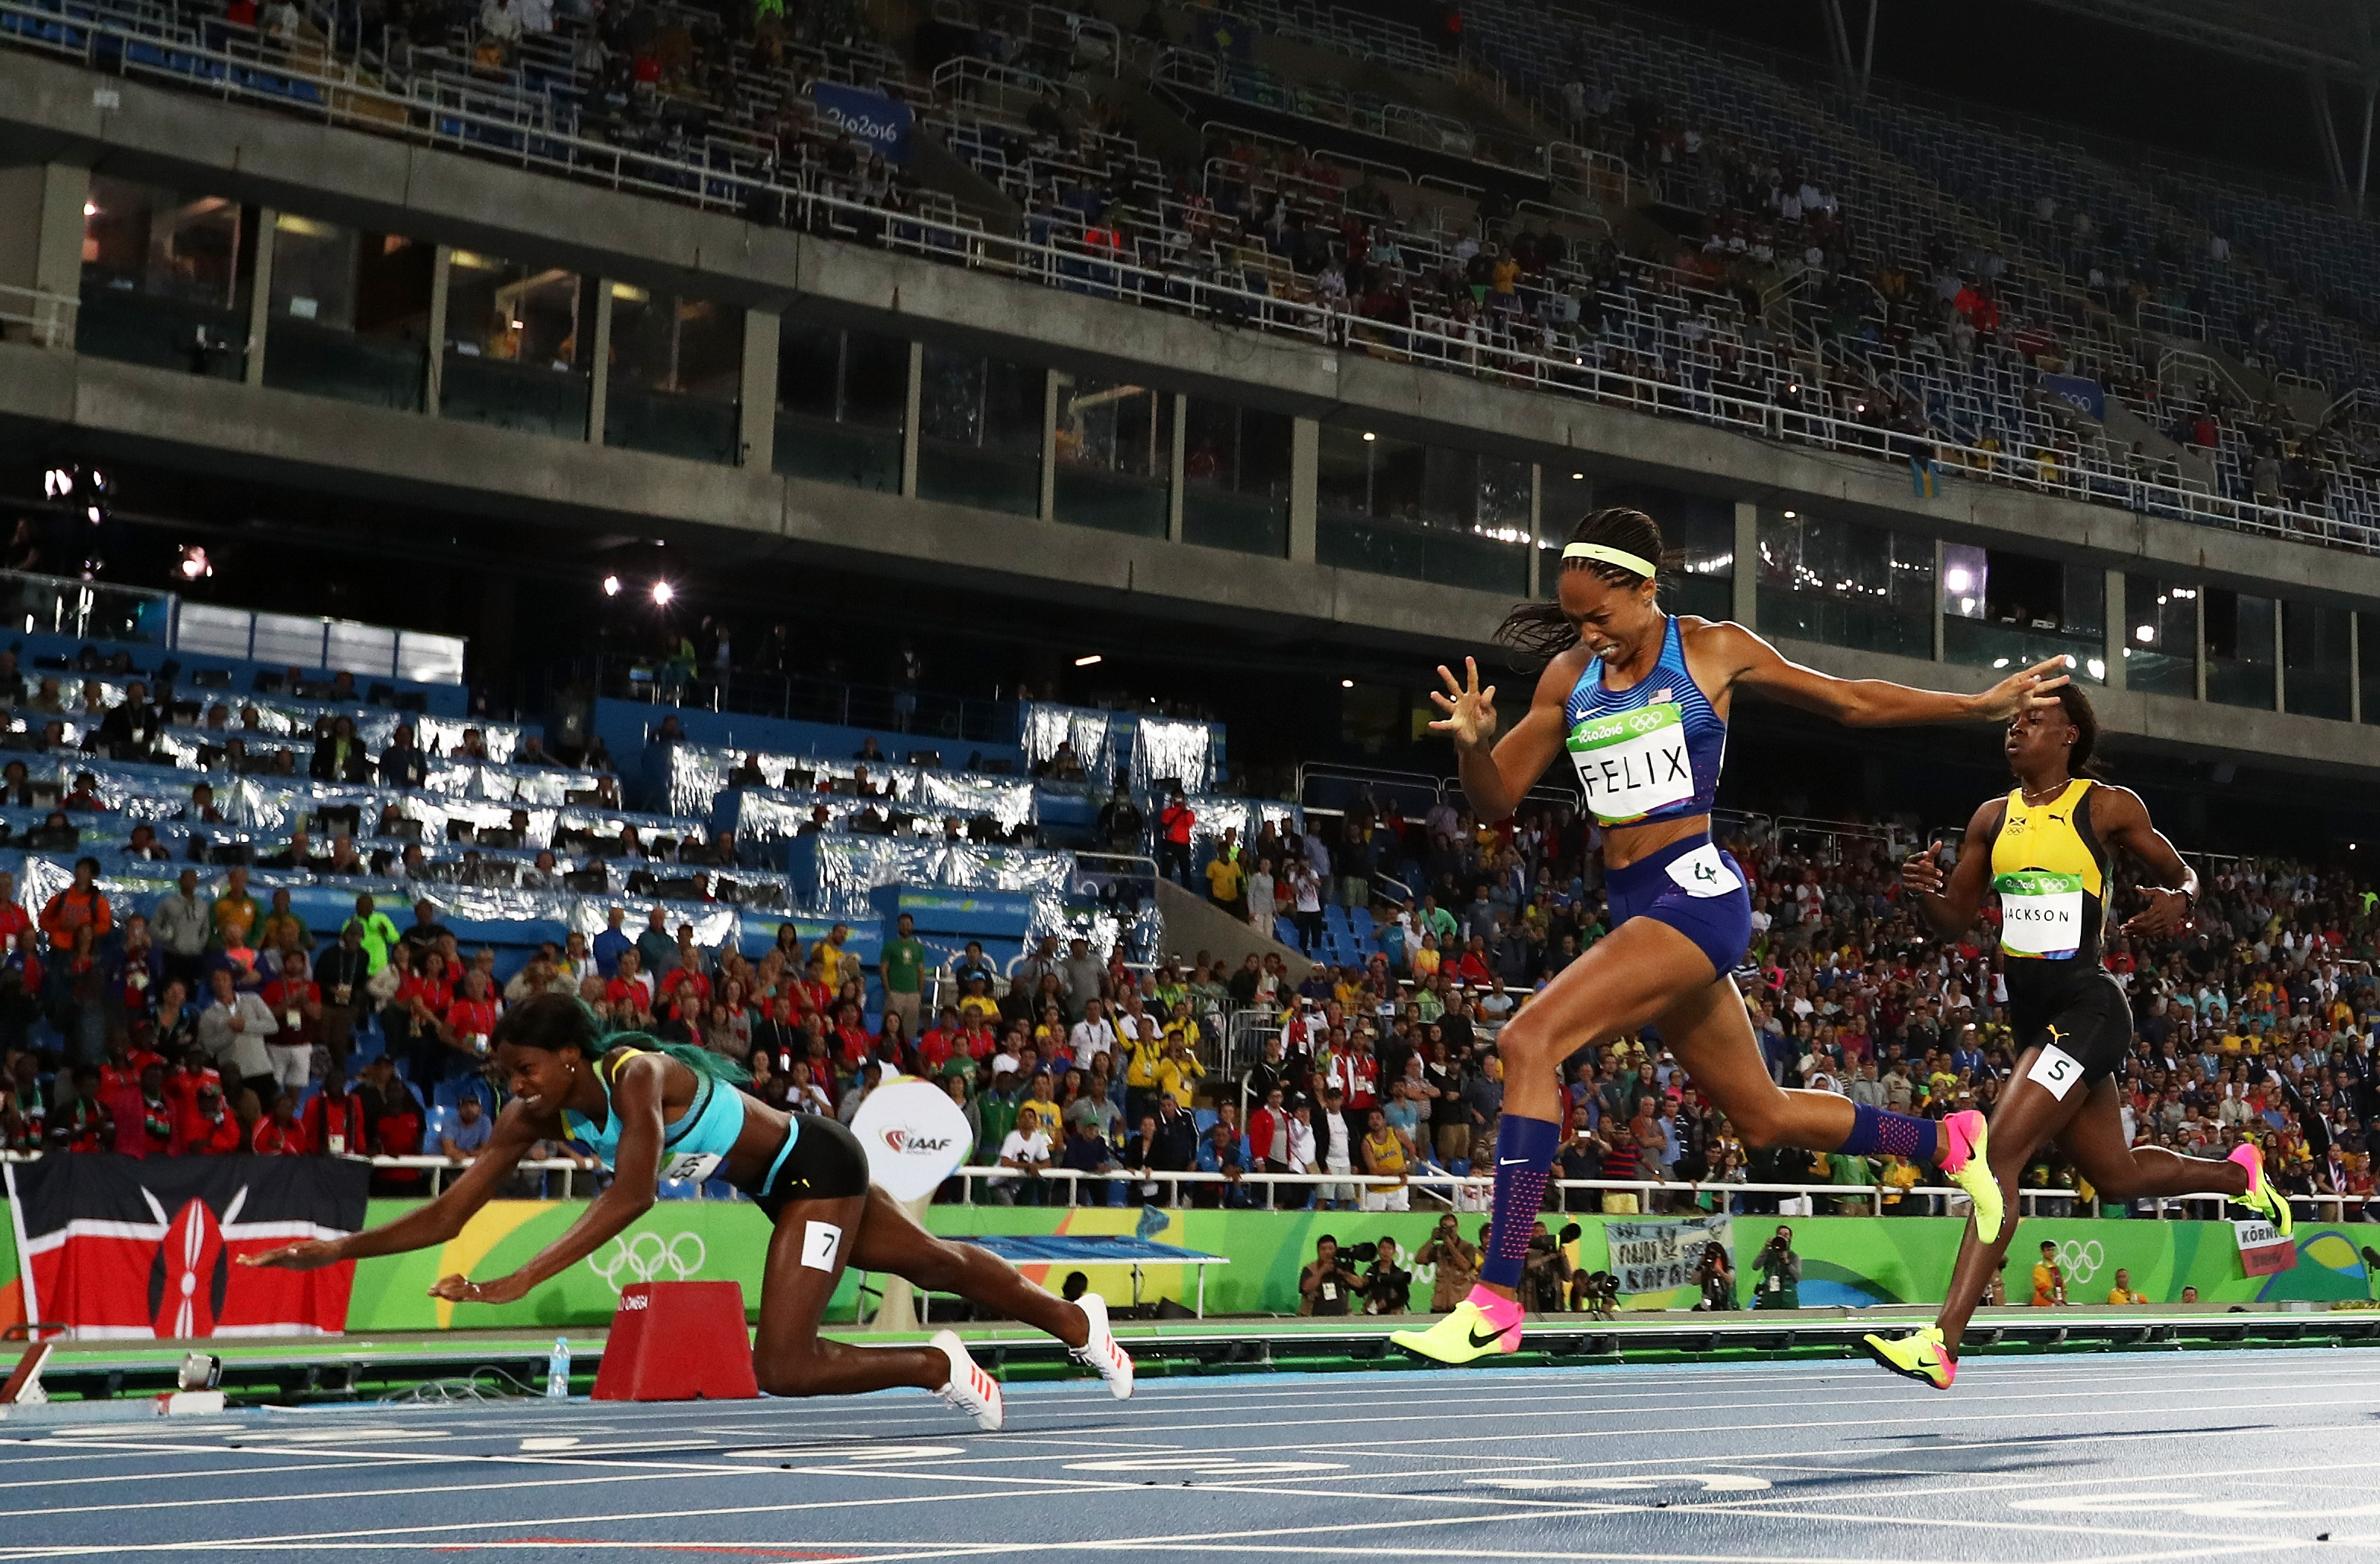 Shaunae Miller of the Bahamas (L) dives over the finish line to win the gold medal in the Women's 400 m final ahead of silver medalist Allyson Felix of the United States (C) and bronze medalist Shericka Jackson of Jamaica (R) on Day 10 of the Rio 2016 Olympic Games at the Olympic Stadium on August 15, 2016, in Rio de Janeiro, Brazil.